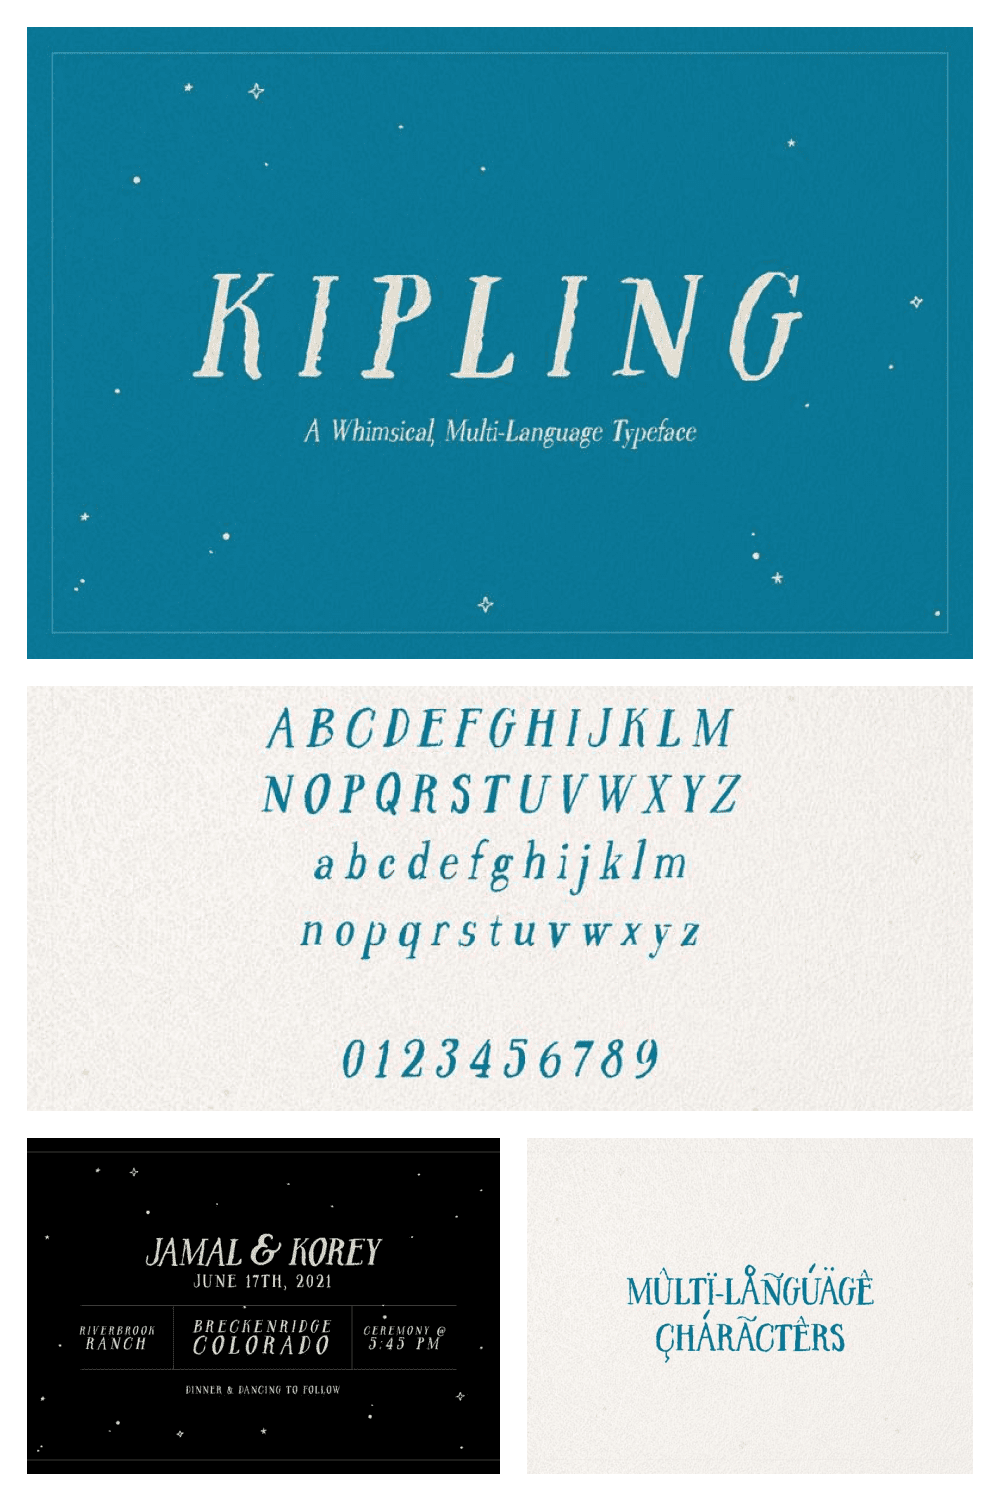 An adventurous font for exciting books.